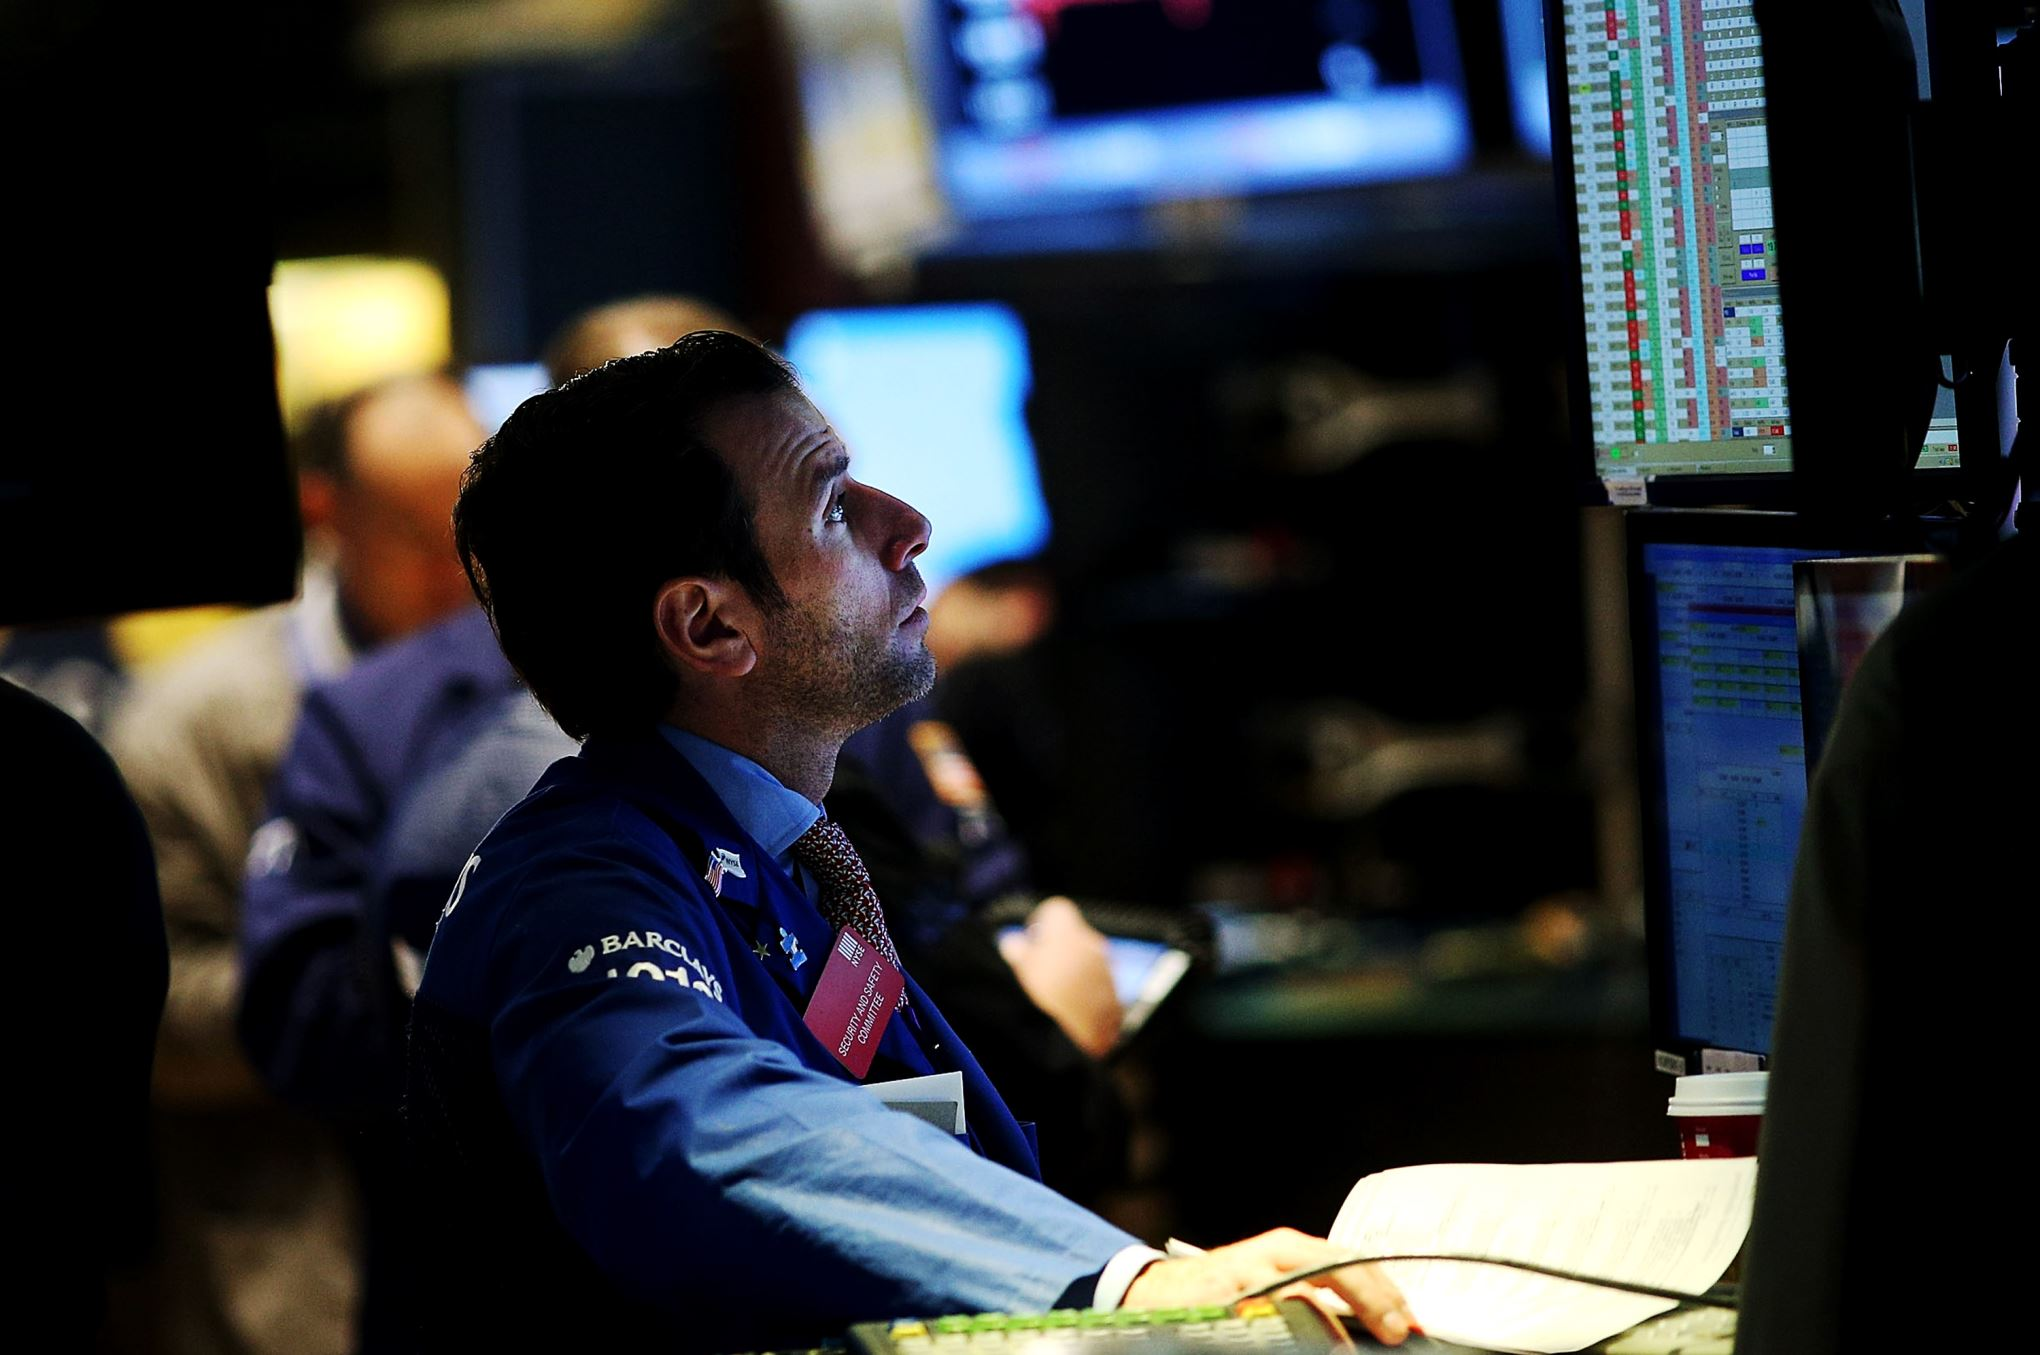 USA stocks gain following phase-one trade deal with China